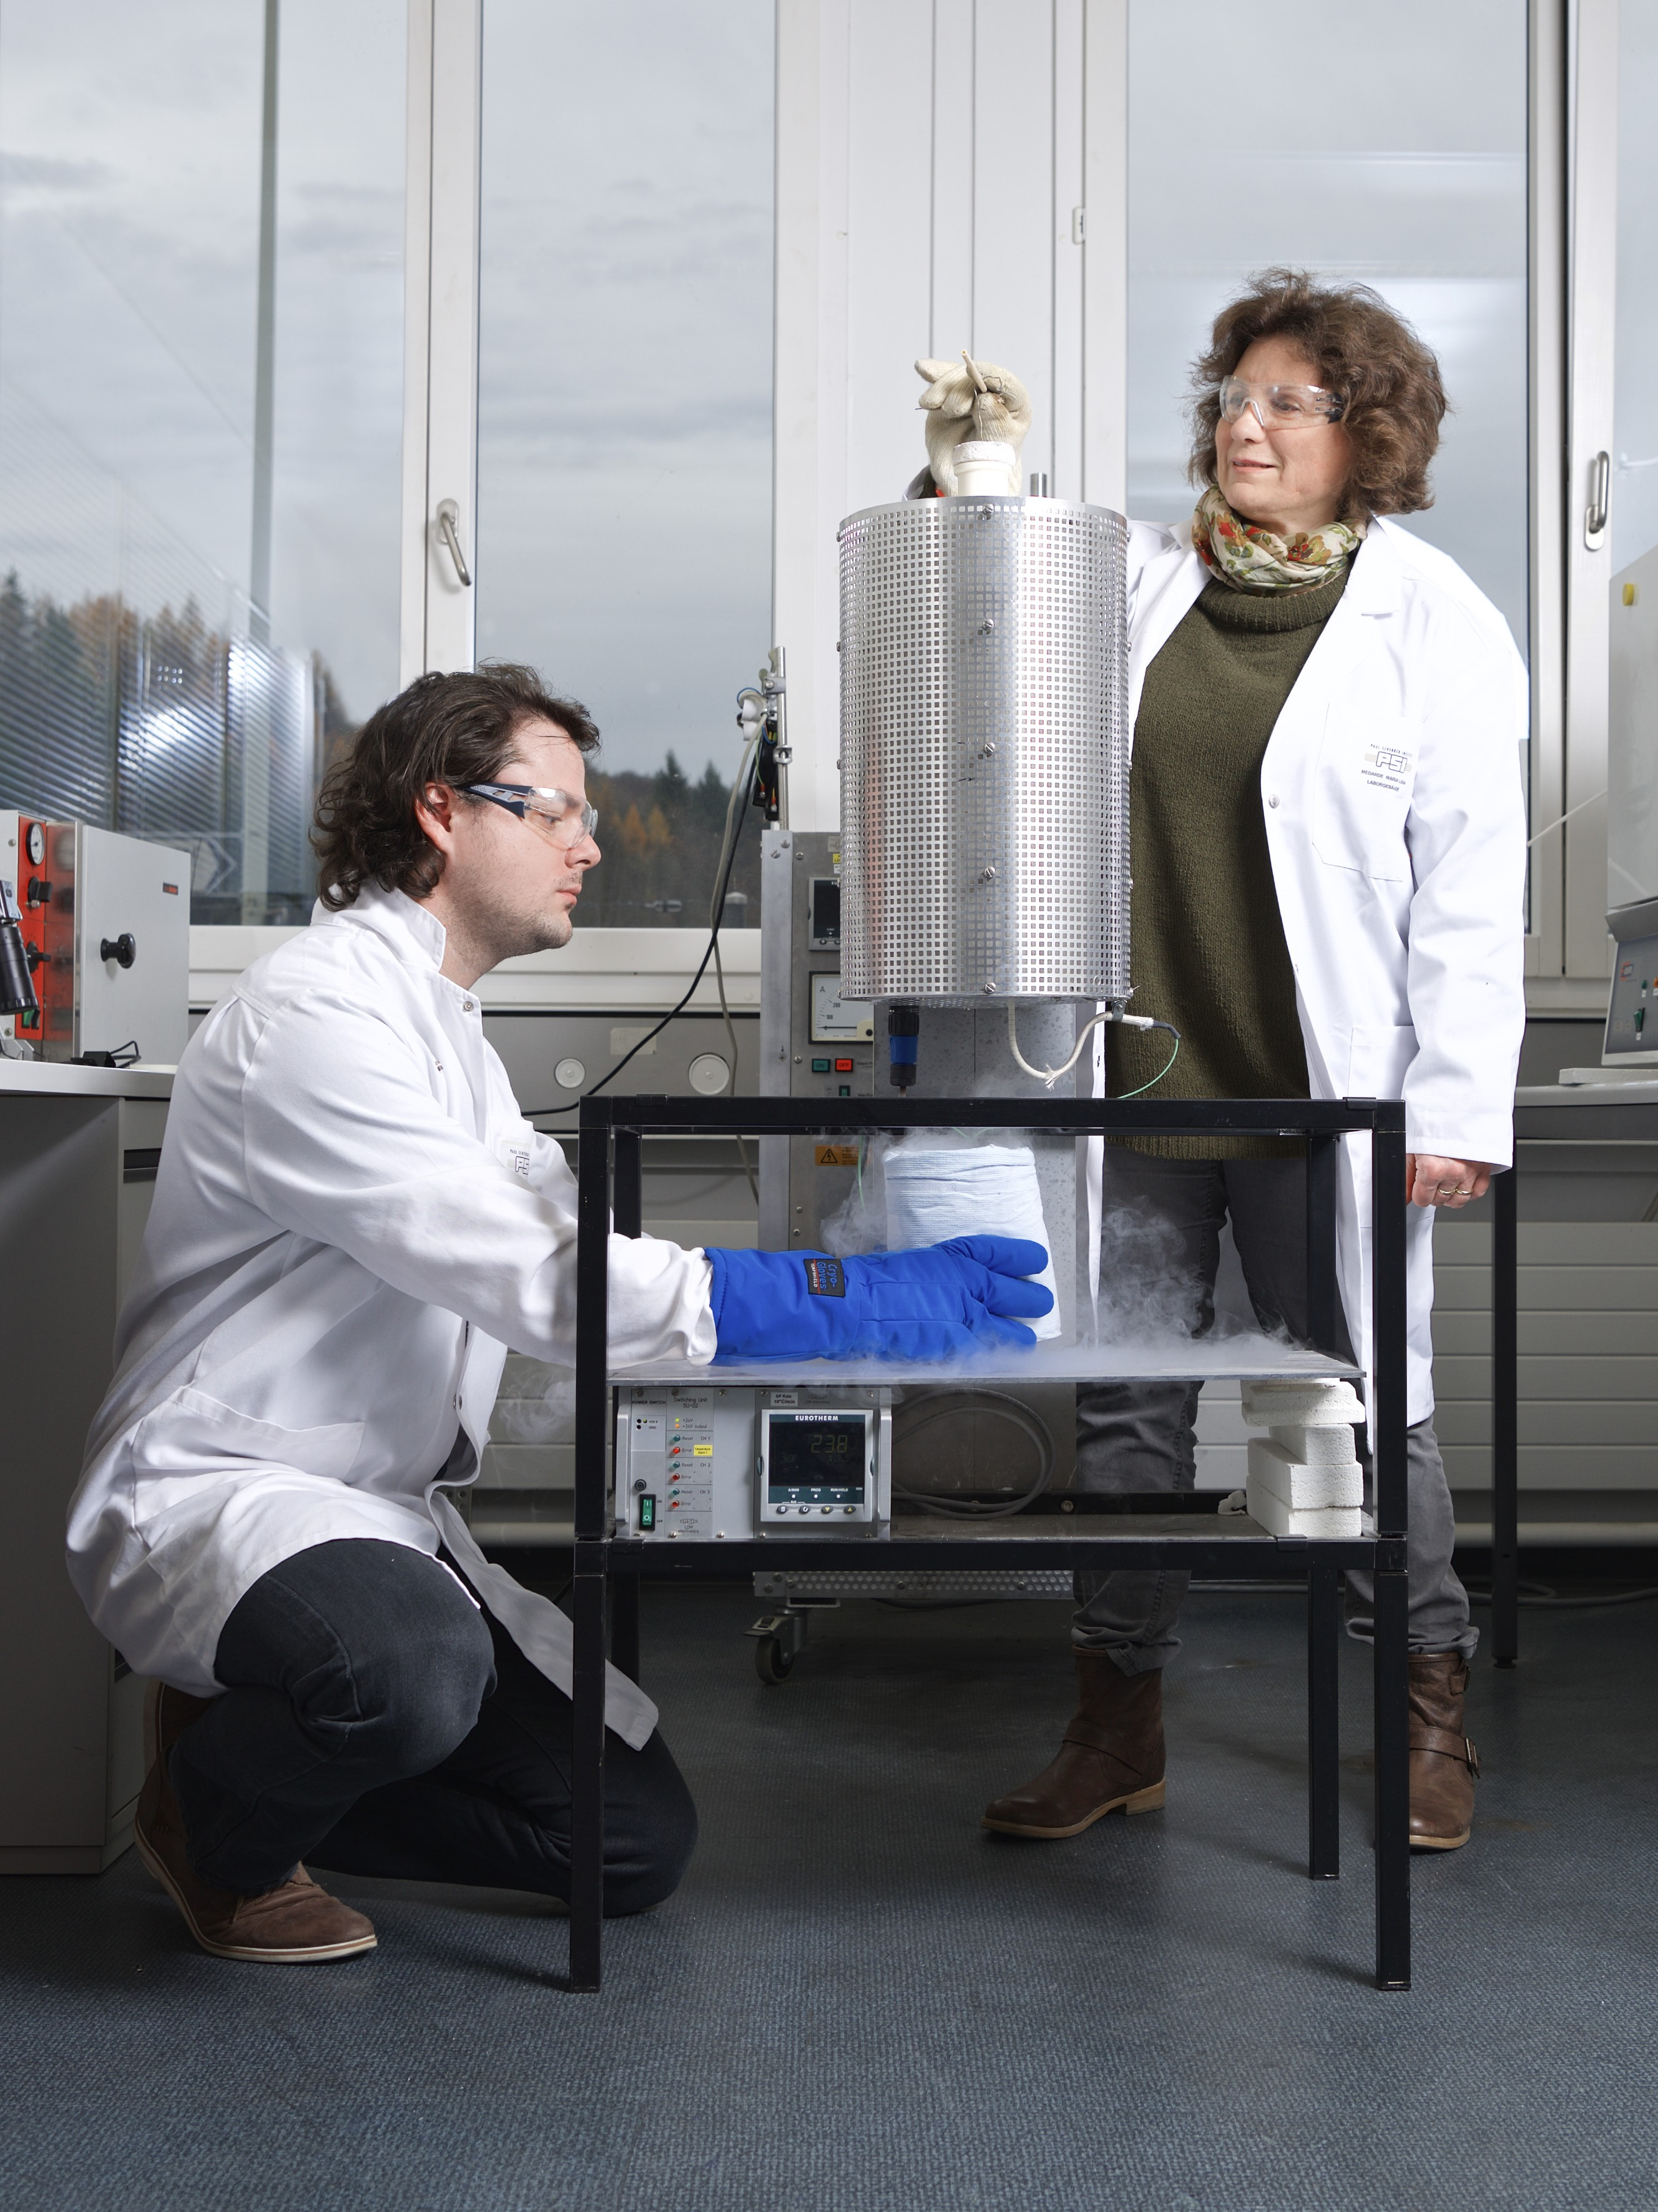 PSI researchers Mickaël Morin and Marisa Medarde freeze-in the atomic arrangement of the multiferroic material YBaCuFeO<sub>5</sub>. For this, the piece of material is first heated in an oven to 1000&nbsp;degrees Celsius and afterwards dropped into a vessel filled with minus 200&nbsp;degree Celsius-cold liquid nitrogen. (Photo: Paul Scherrer Institute/Markus Fischer)